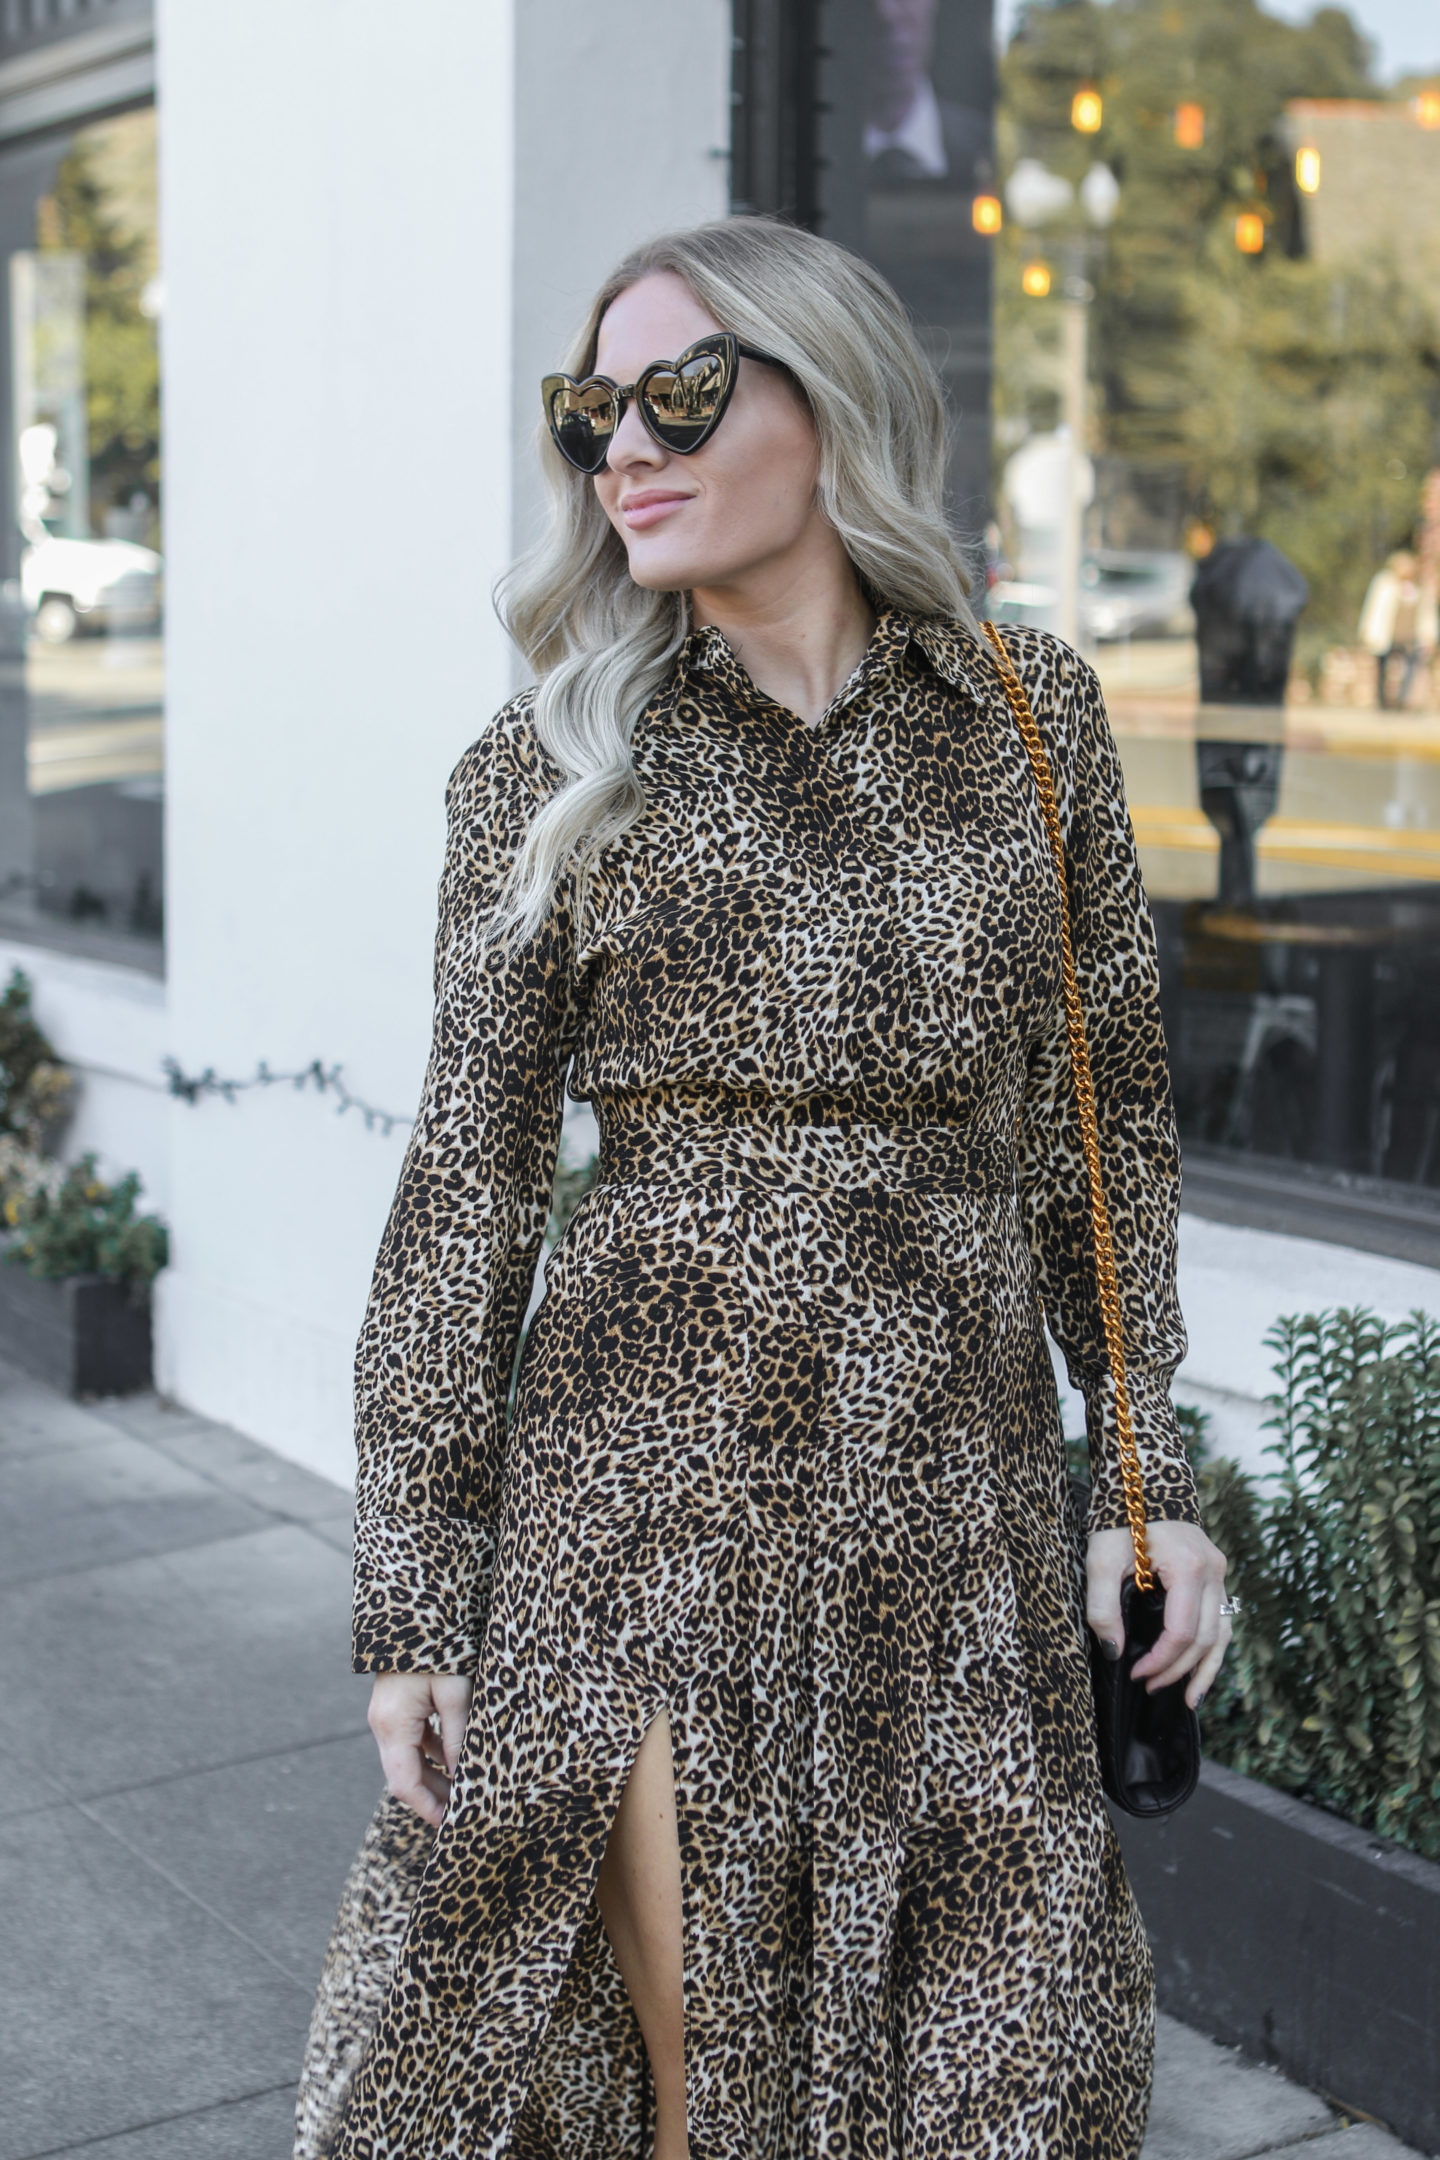 Leopard Print Maxi Dress & Glam Sneakers featured by top US fashion blog, Dress Me Blonde: image of a woman wearing a Topshop leopard maxi dress, YSL heart sunglasses, Golden Goose sneakers, a Gucci shoulder bag and an Anthropologie necklace